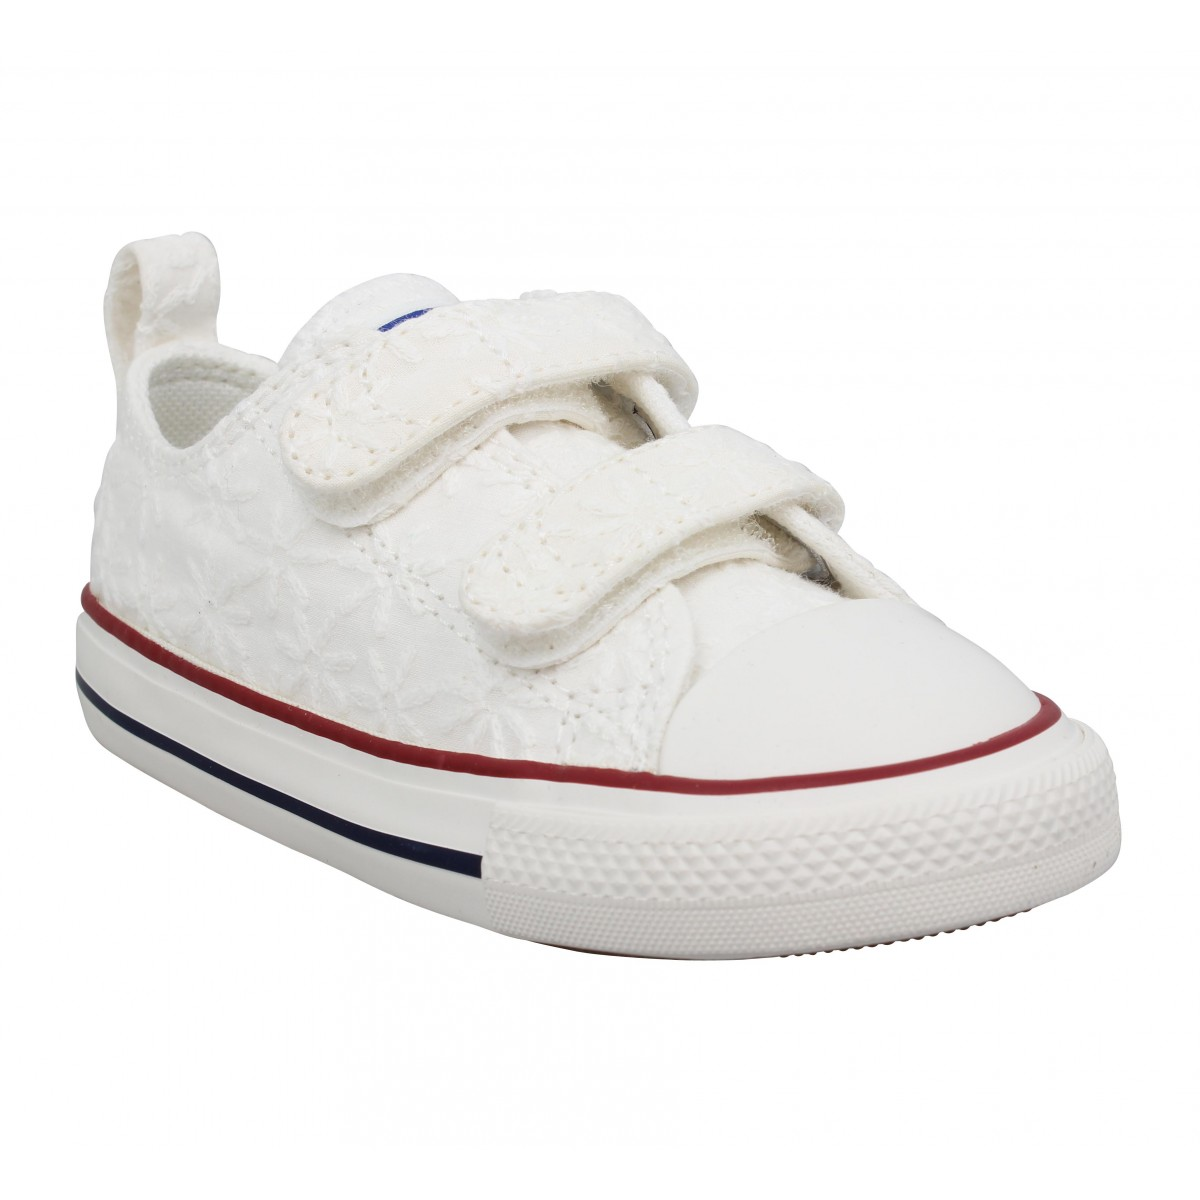 Baskets CONVERSE Chuck Taylor All Star 2V toile brodee Enfant Blanc